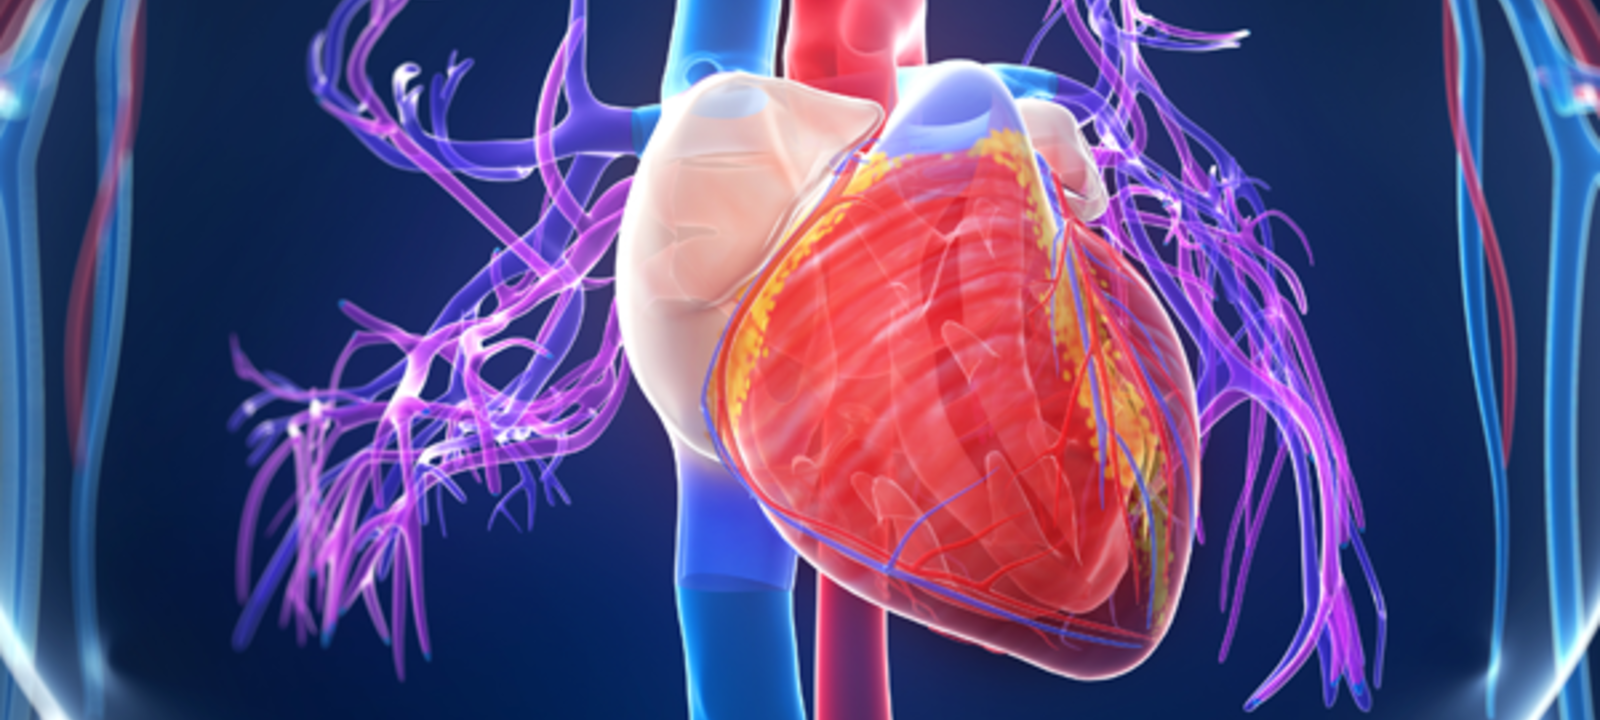 Interventional Cardiology Review Course for Boards and